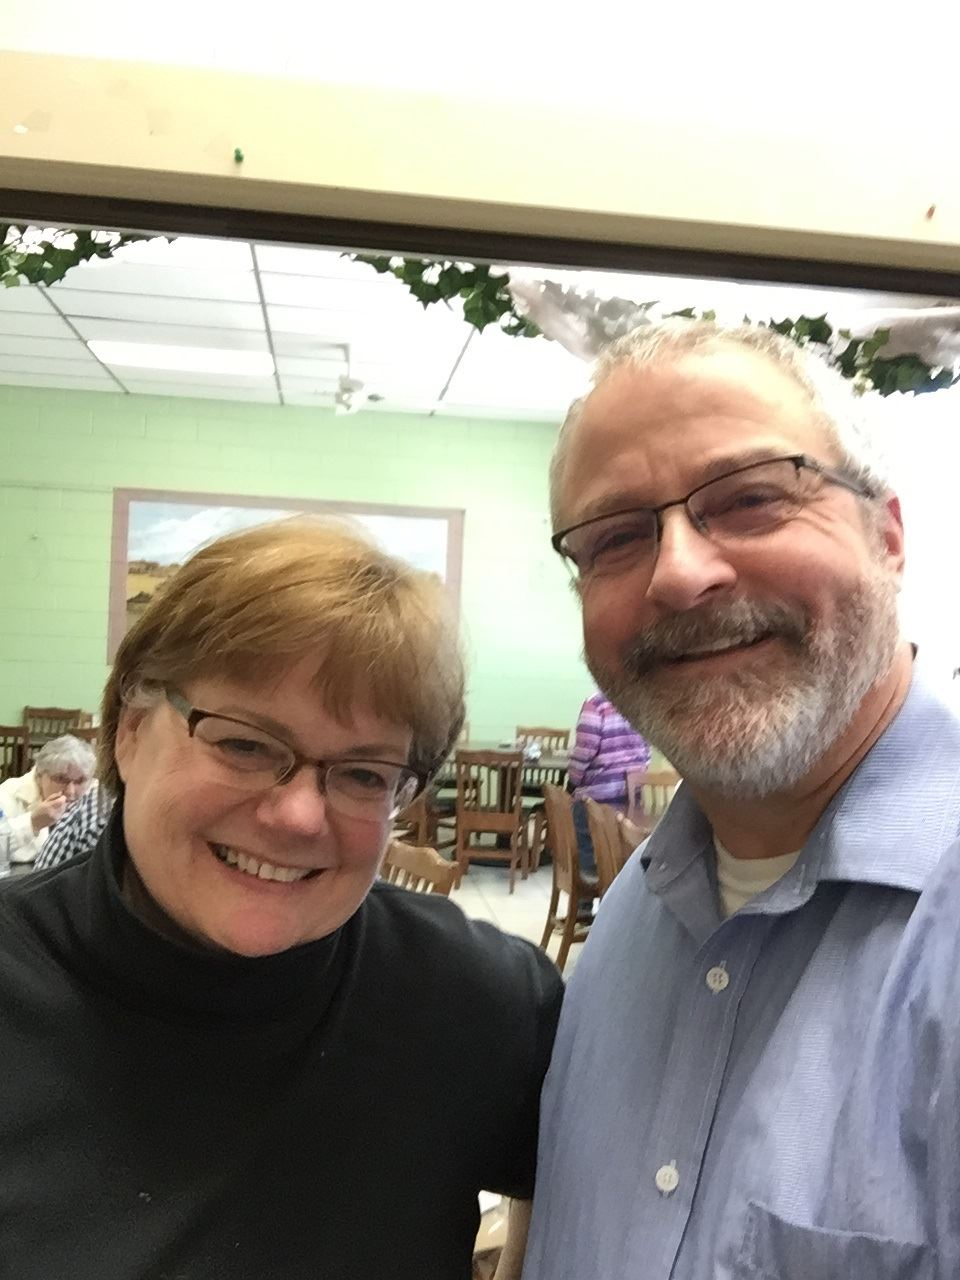 010 with Nancy Garfield on 2018-04-23